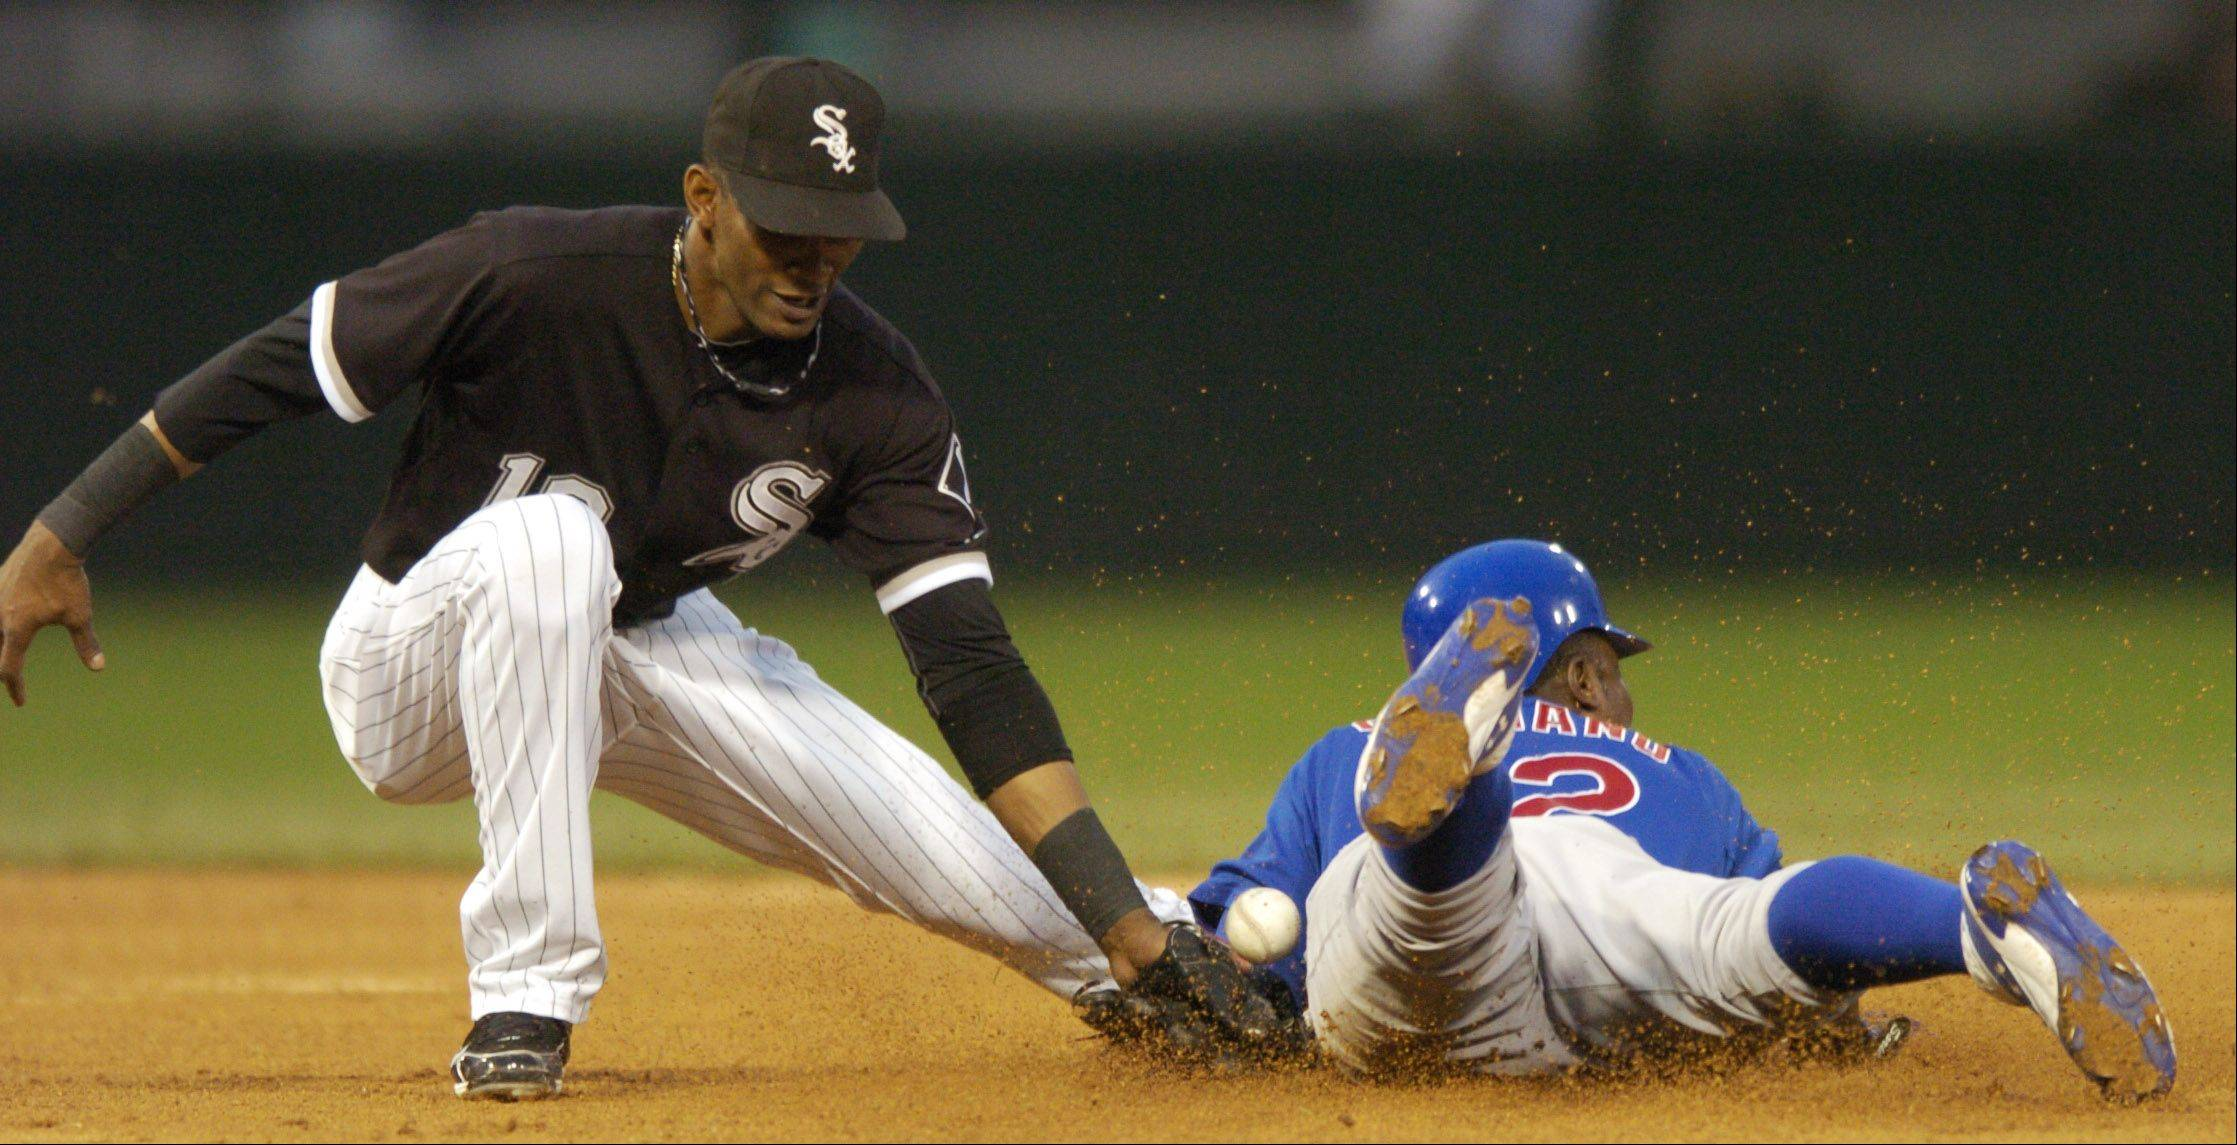 White Sox shortstop Alexei Ramirez can't hang onto the throw as Alfonso Soriano of the Cubs steals second base during Wednesday's game at U.S. Cellular Field.